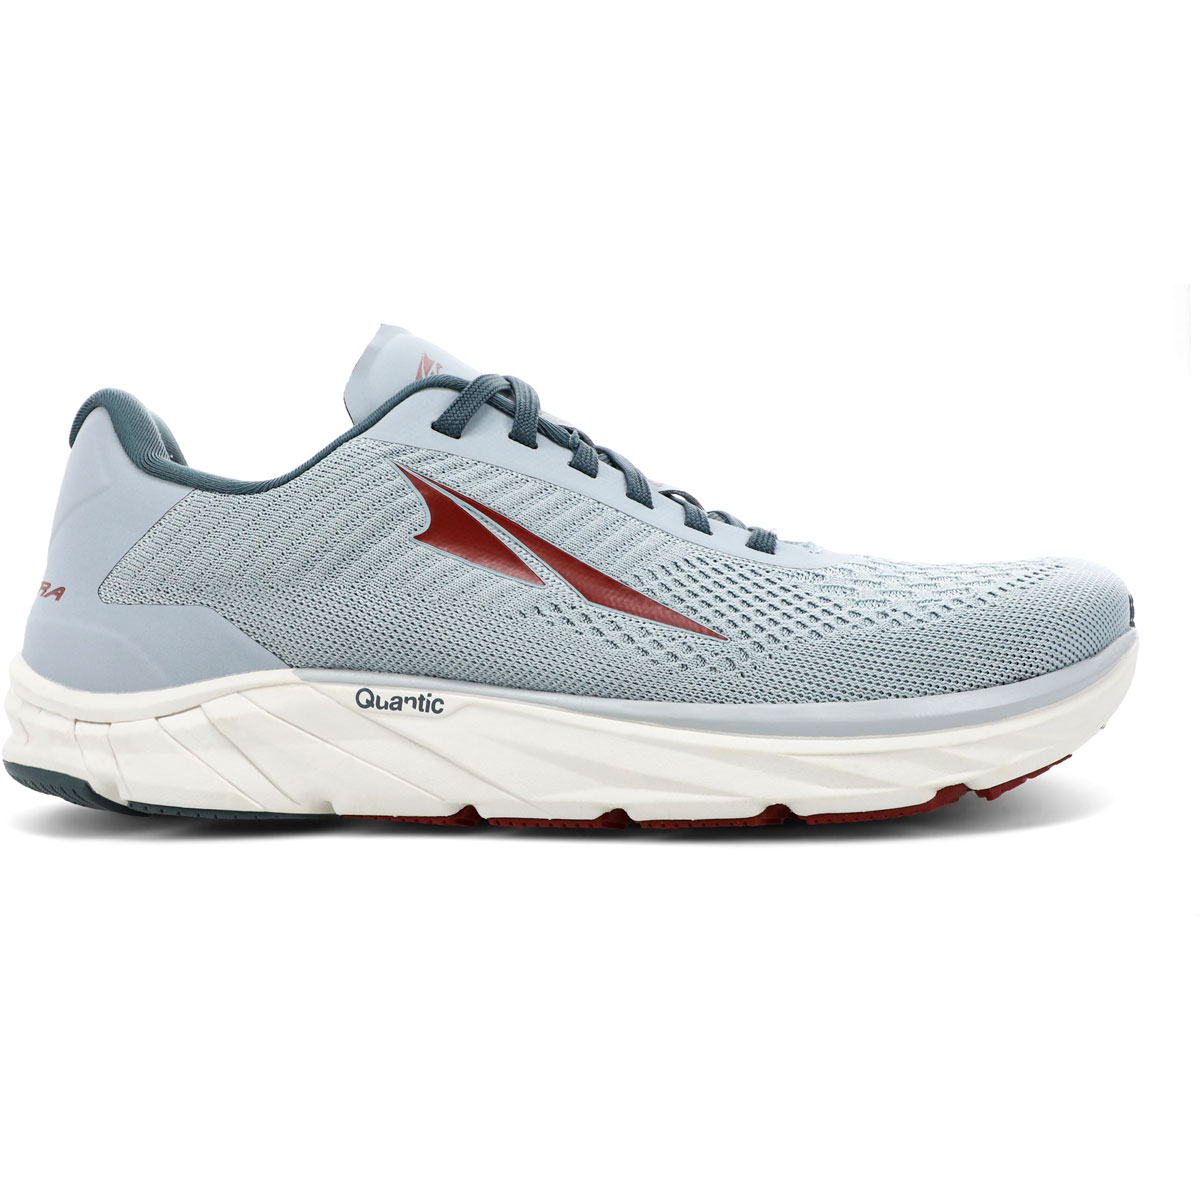 Men's Altra Torin 4.5 Plush Running Shoe - Color: Light Gray/Red - Size: 7 - Width: Regular, Light Gray/Red, large, image 1